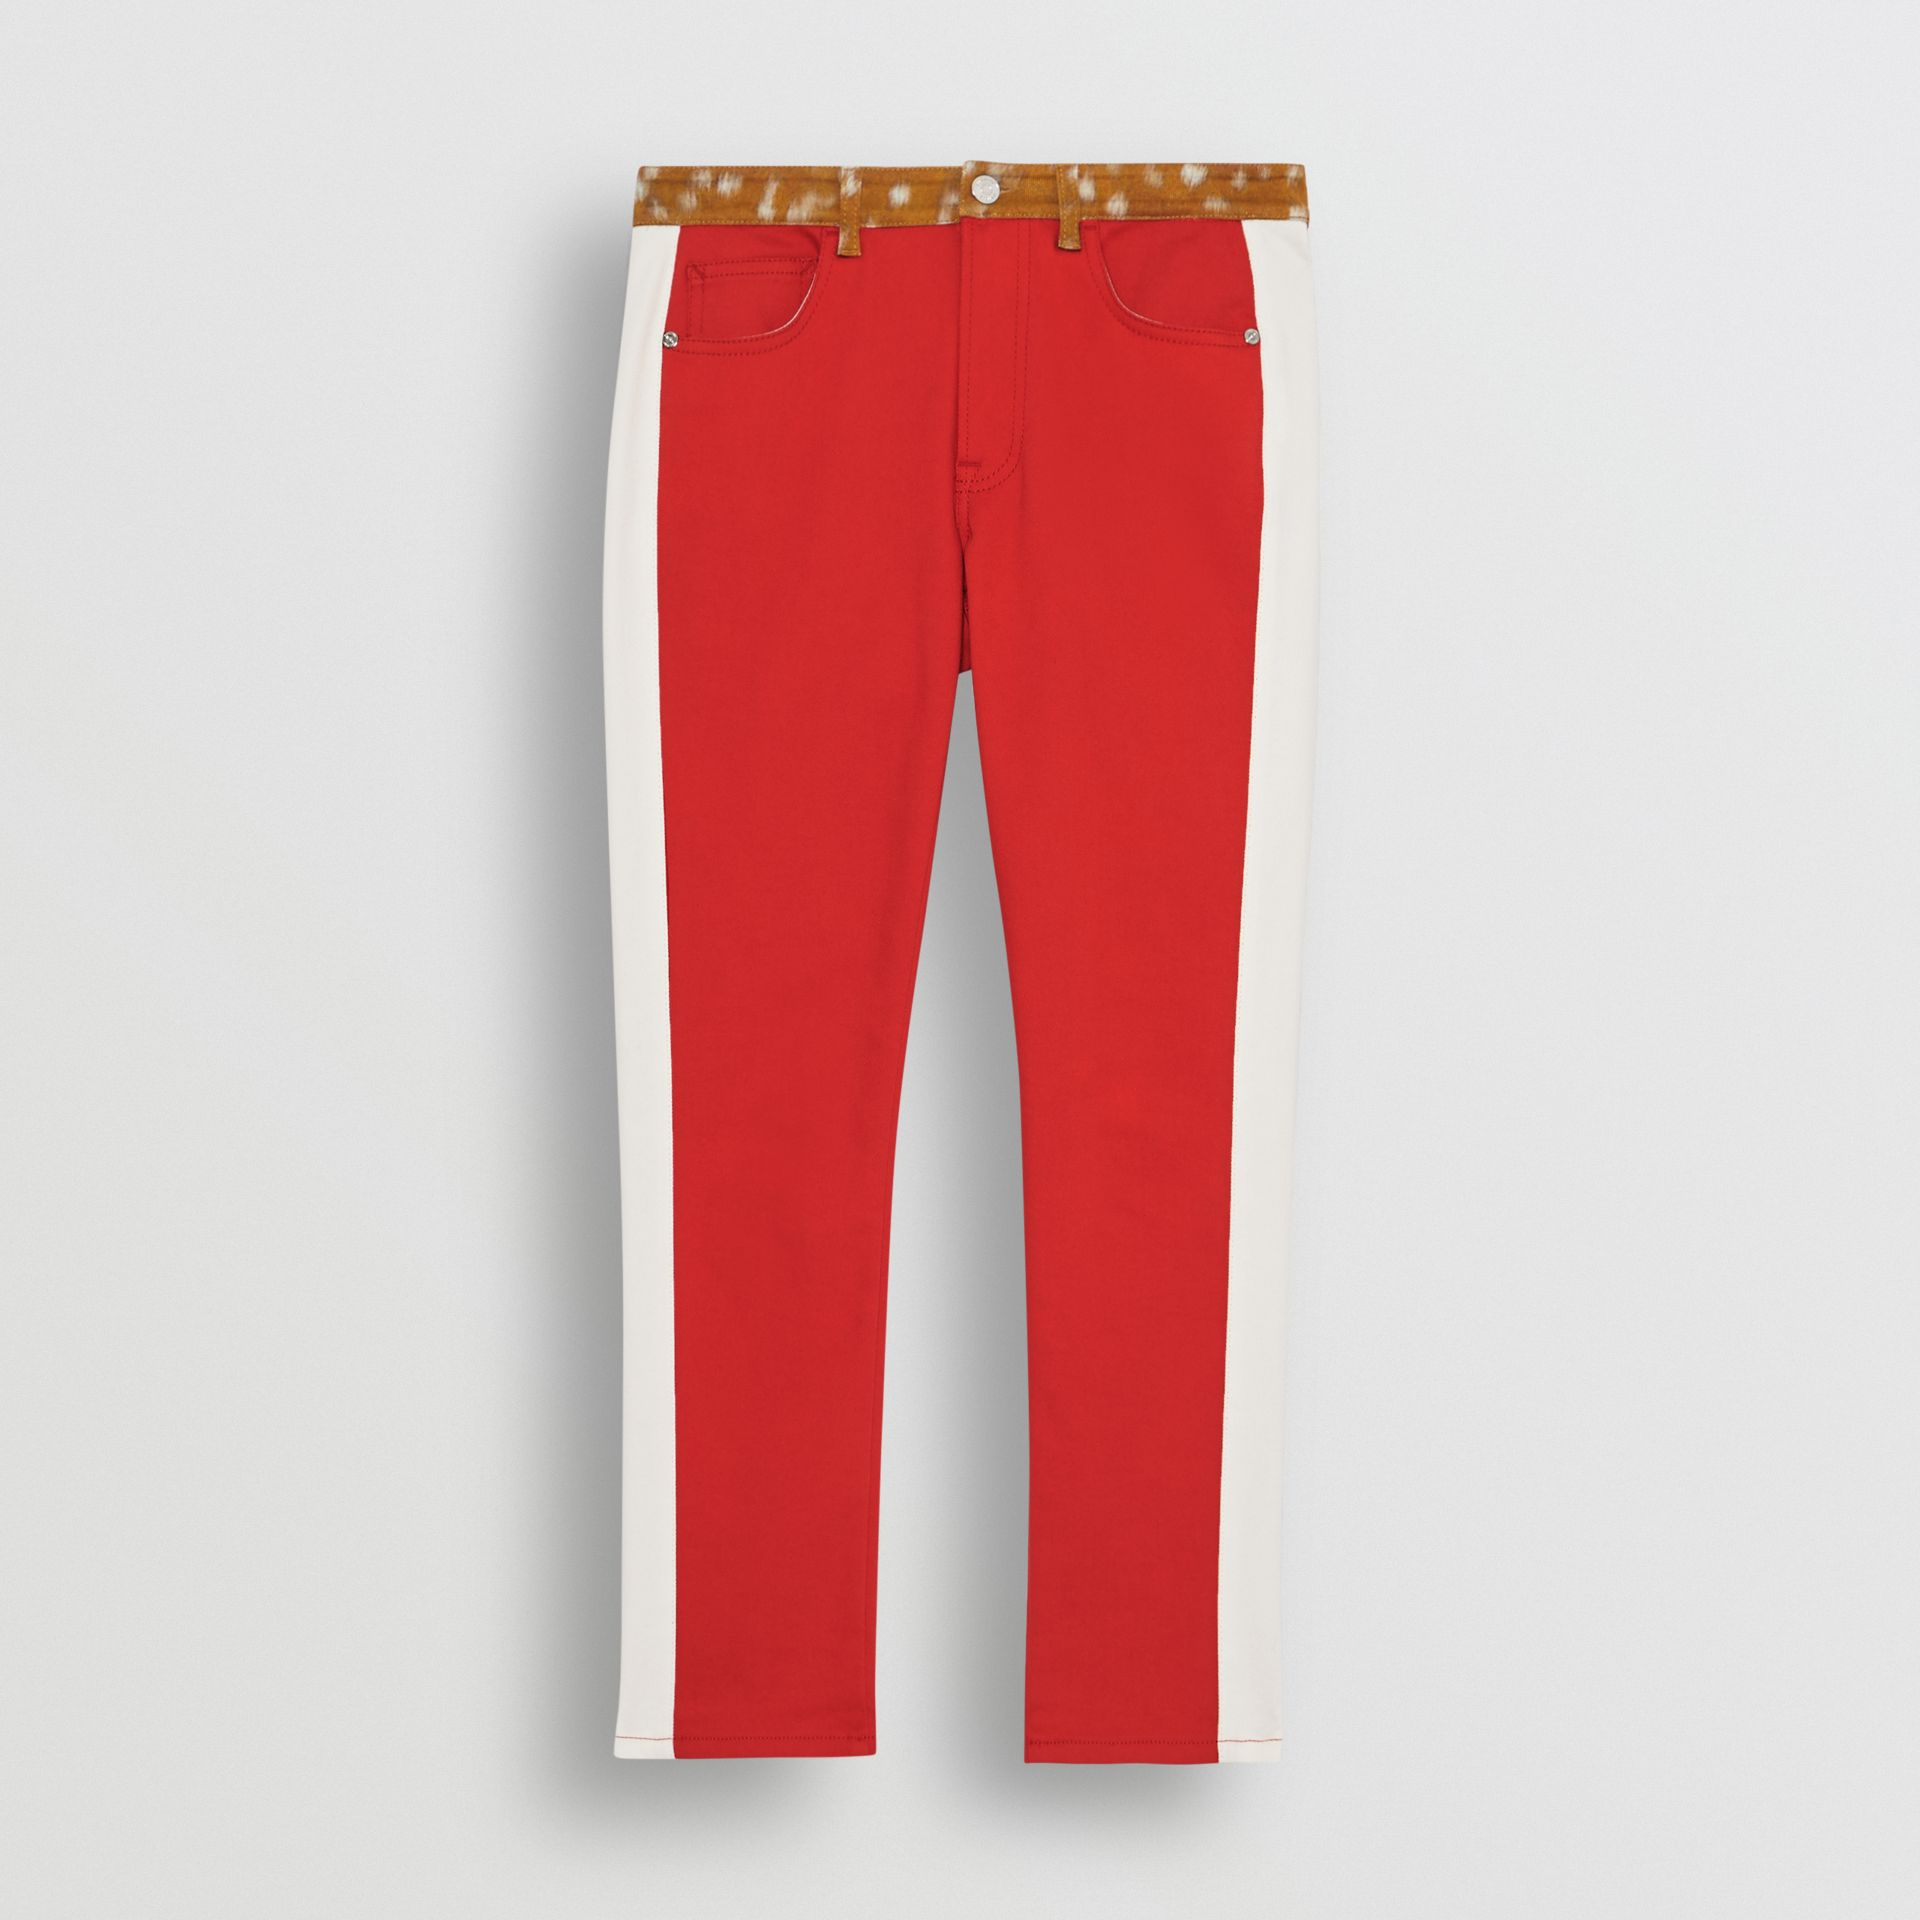 Straight Fit Deer Print Trim Japanese Denim Jeans in Bright Red - Women | Burberry - gallery image 3